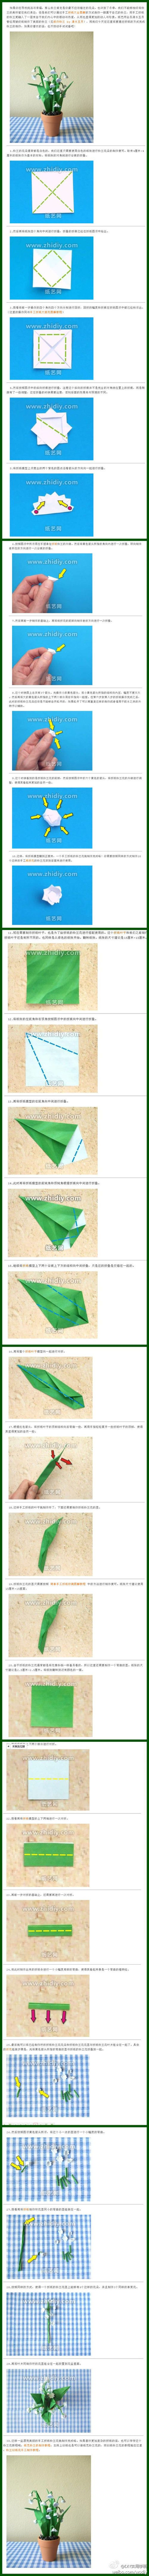 Origami Bell Orchid Flower Folding Instructions Origami